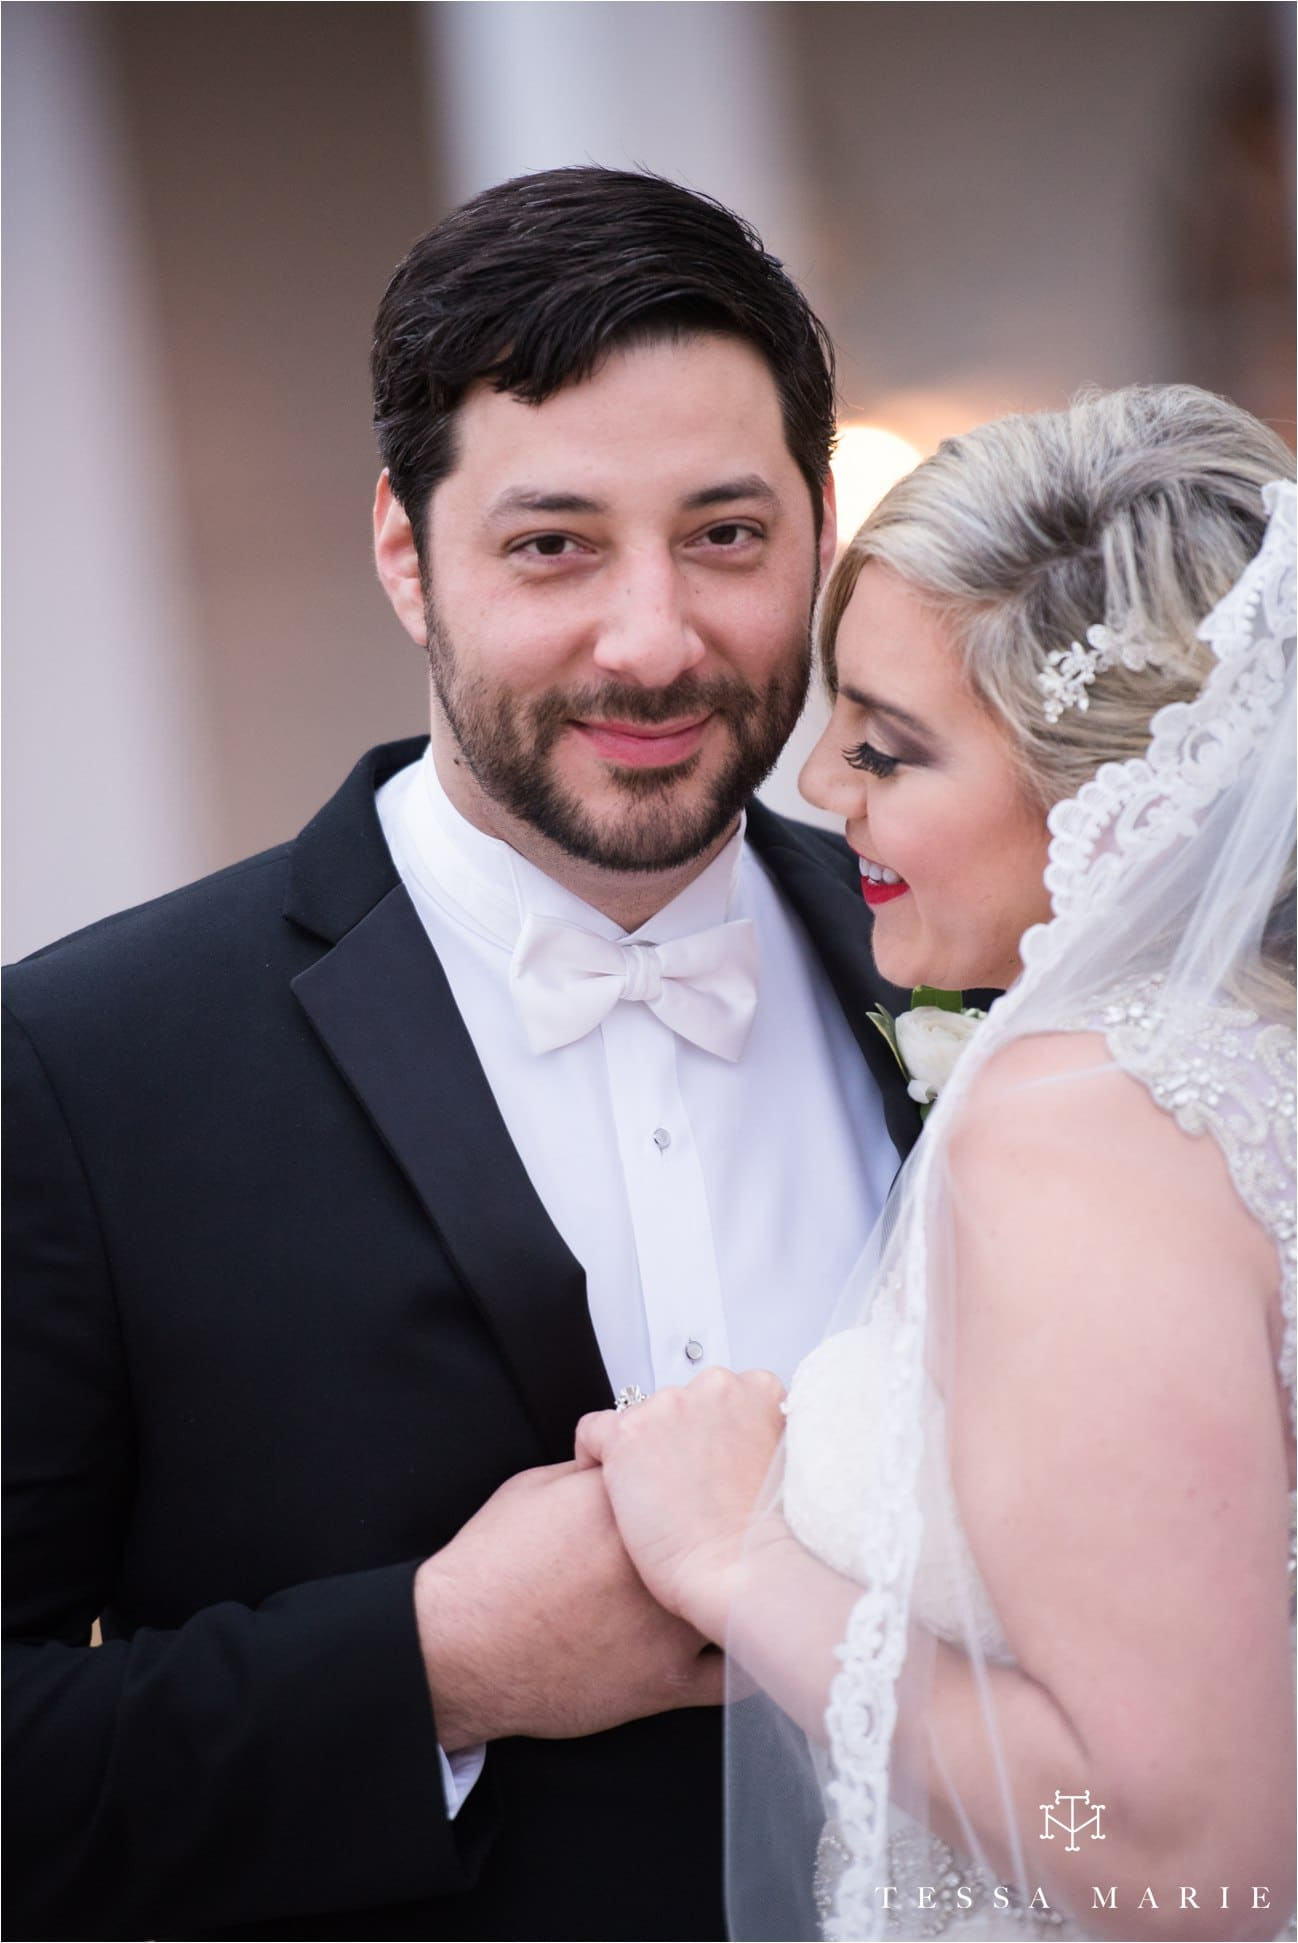 tessa_marie_brickyard_marietta_new_years_wedding_pictures_candid_emotional_wedding_portraits_0046